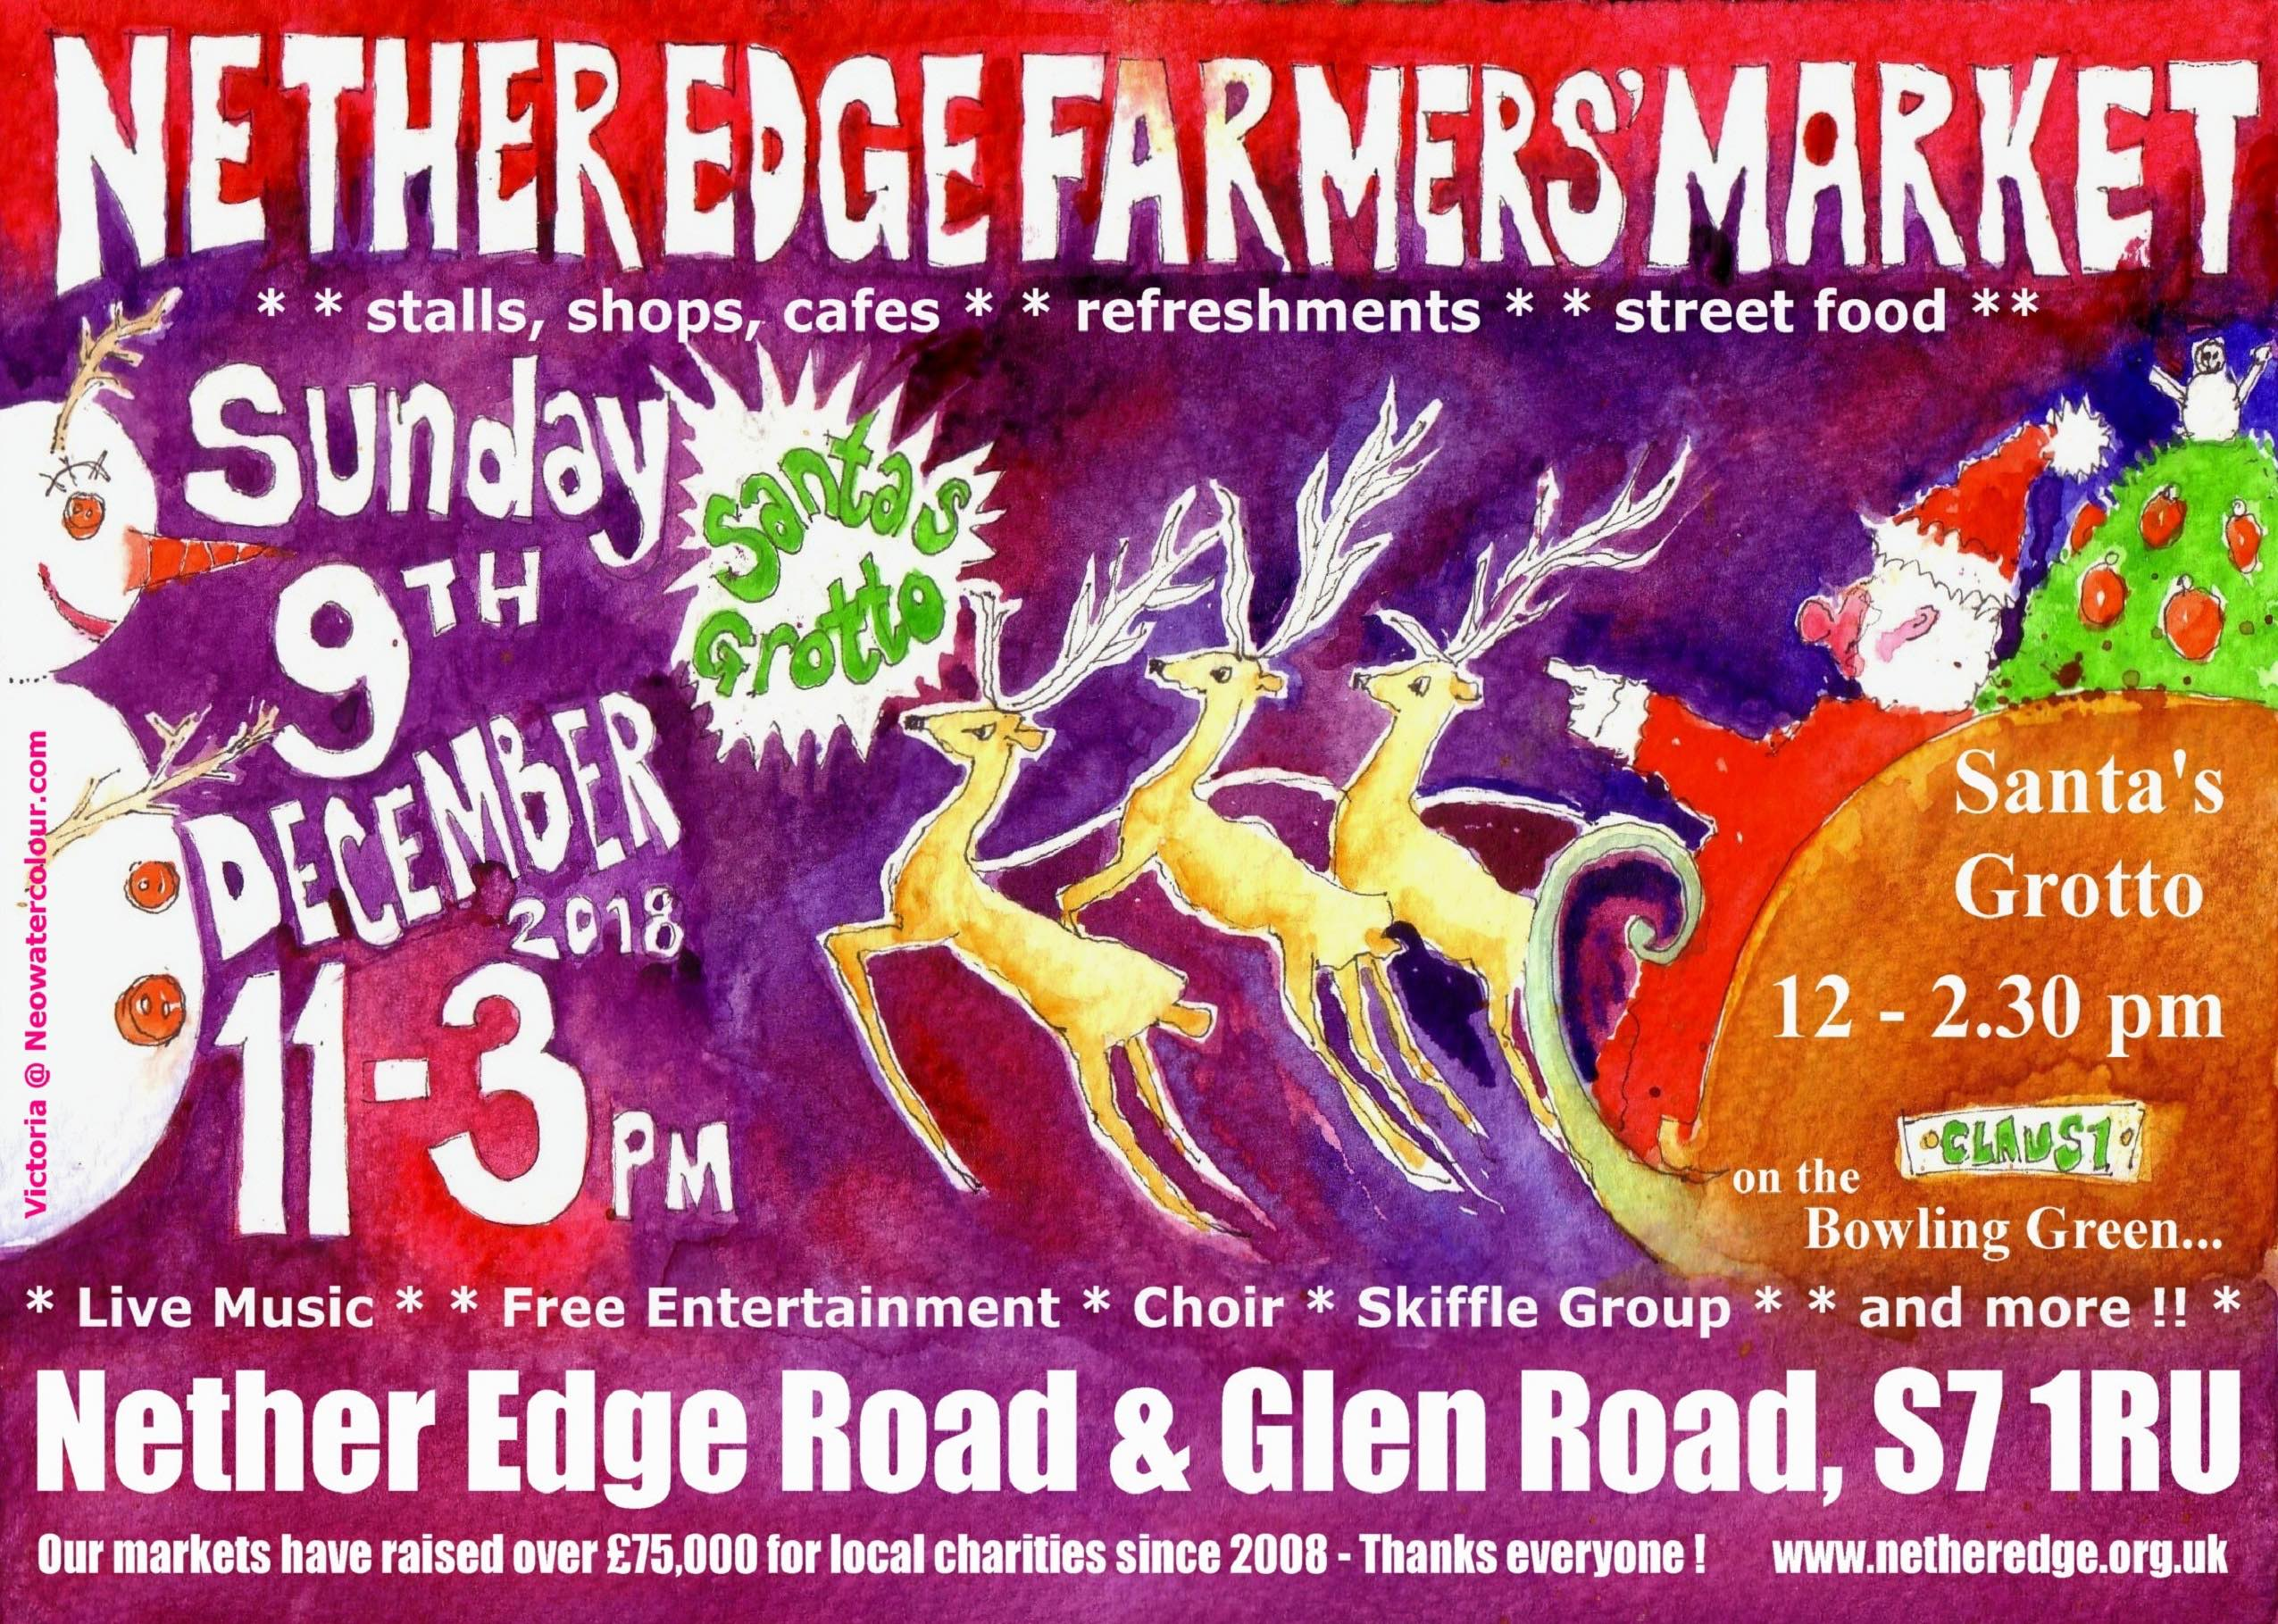 Flyer for Christmas Farmers' Market, December 9th Nether Edge